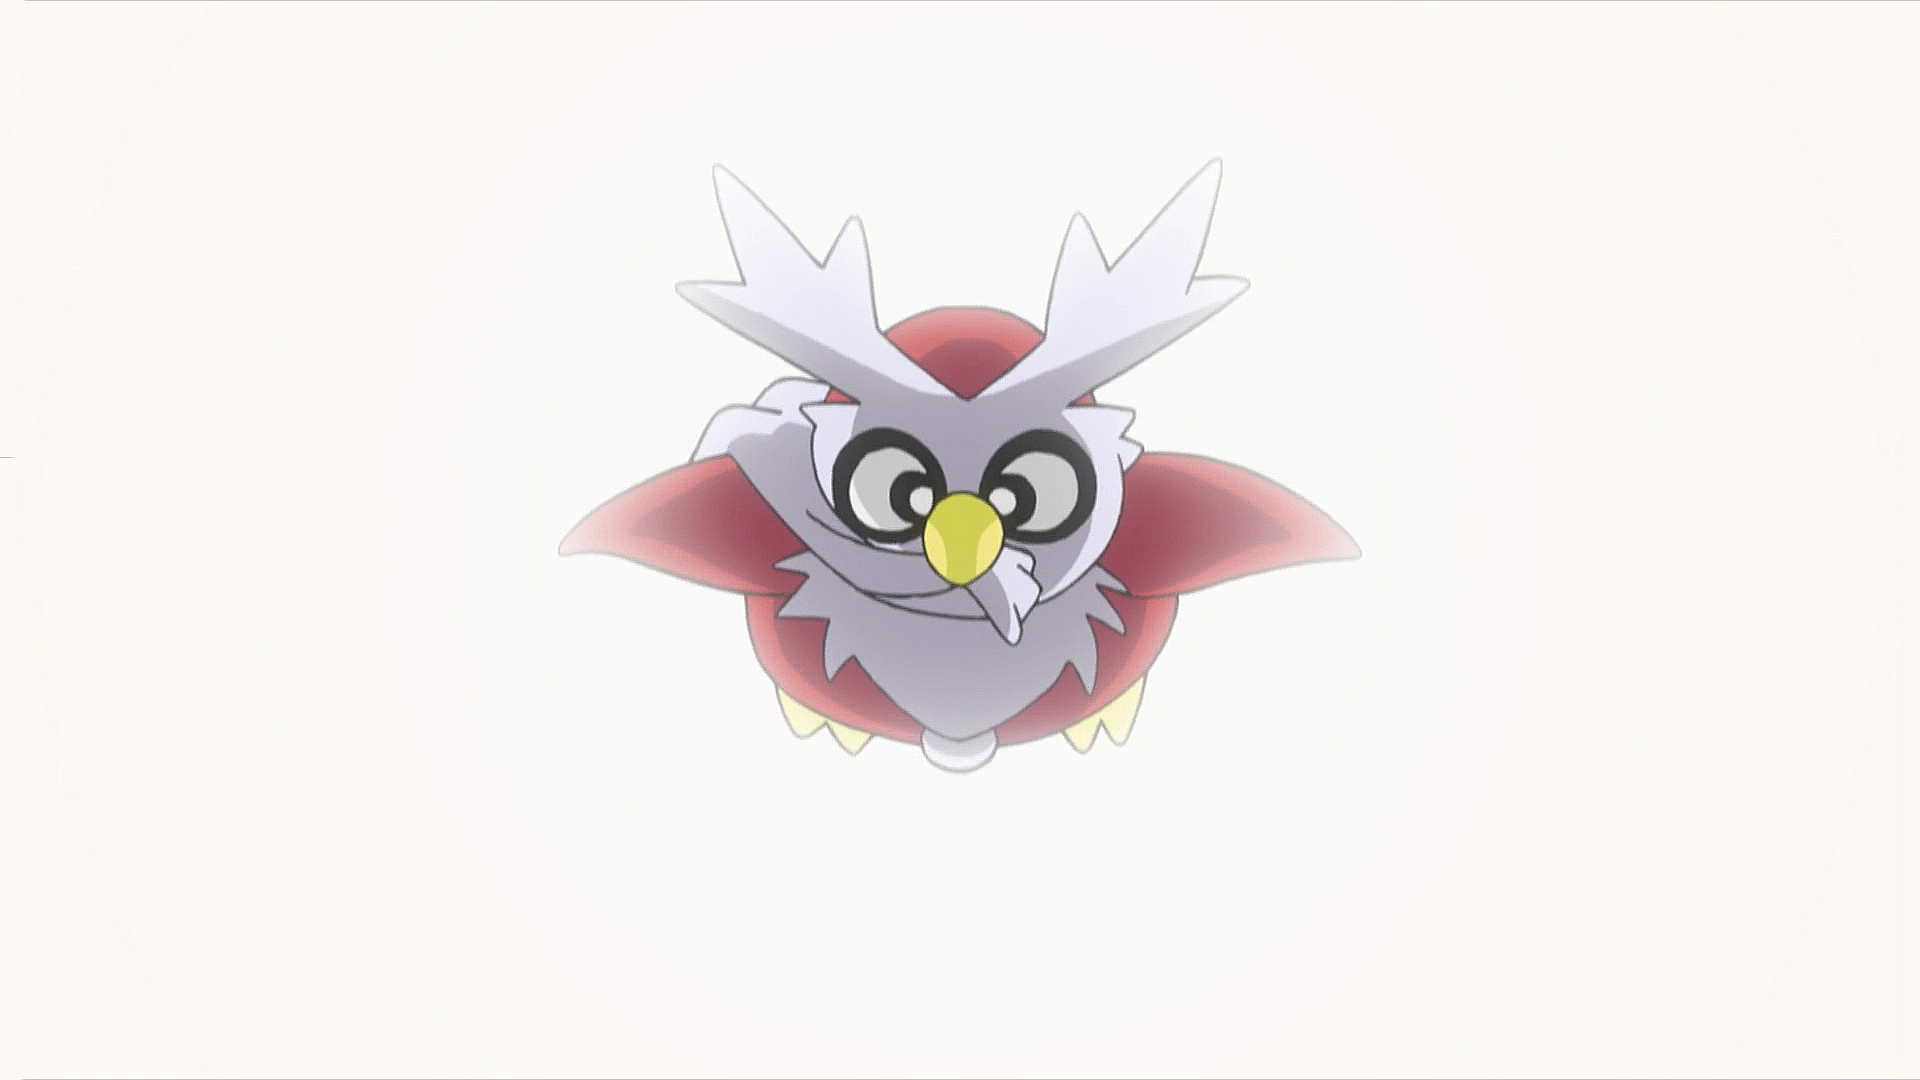 Delibird serves as the fee collector of Team Rocket. It has appeared several times delivering packages and bills to Jessie, James and Meowth.